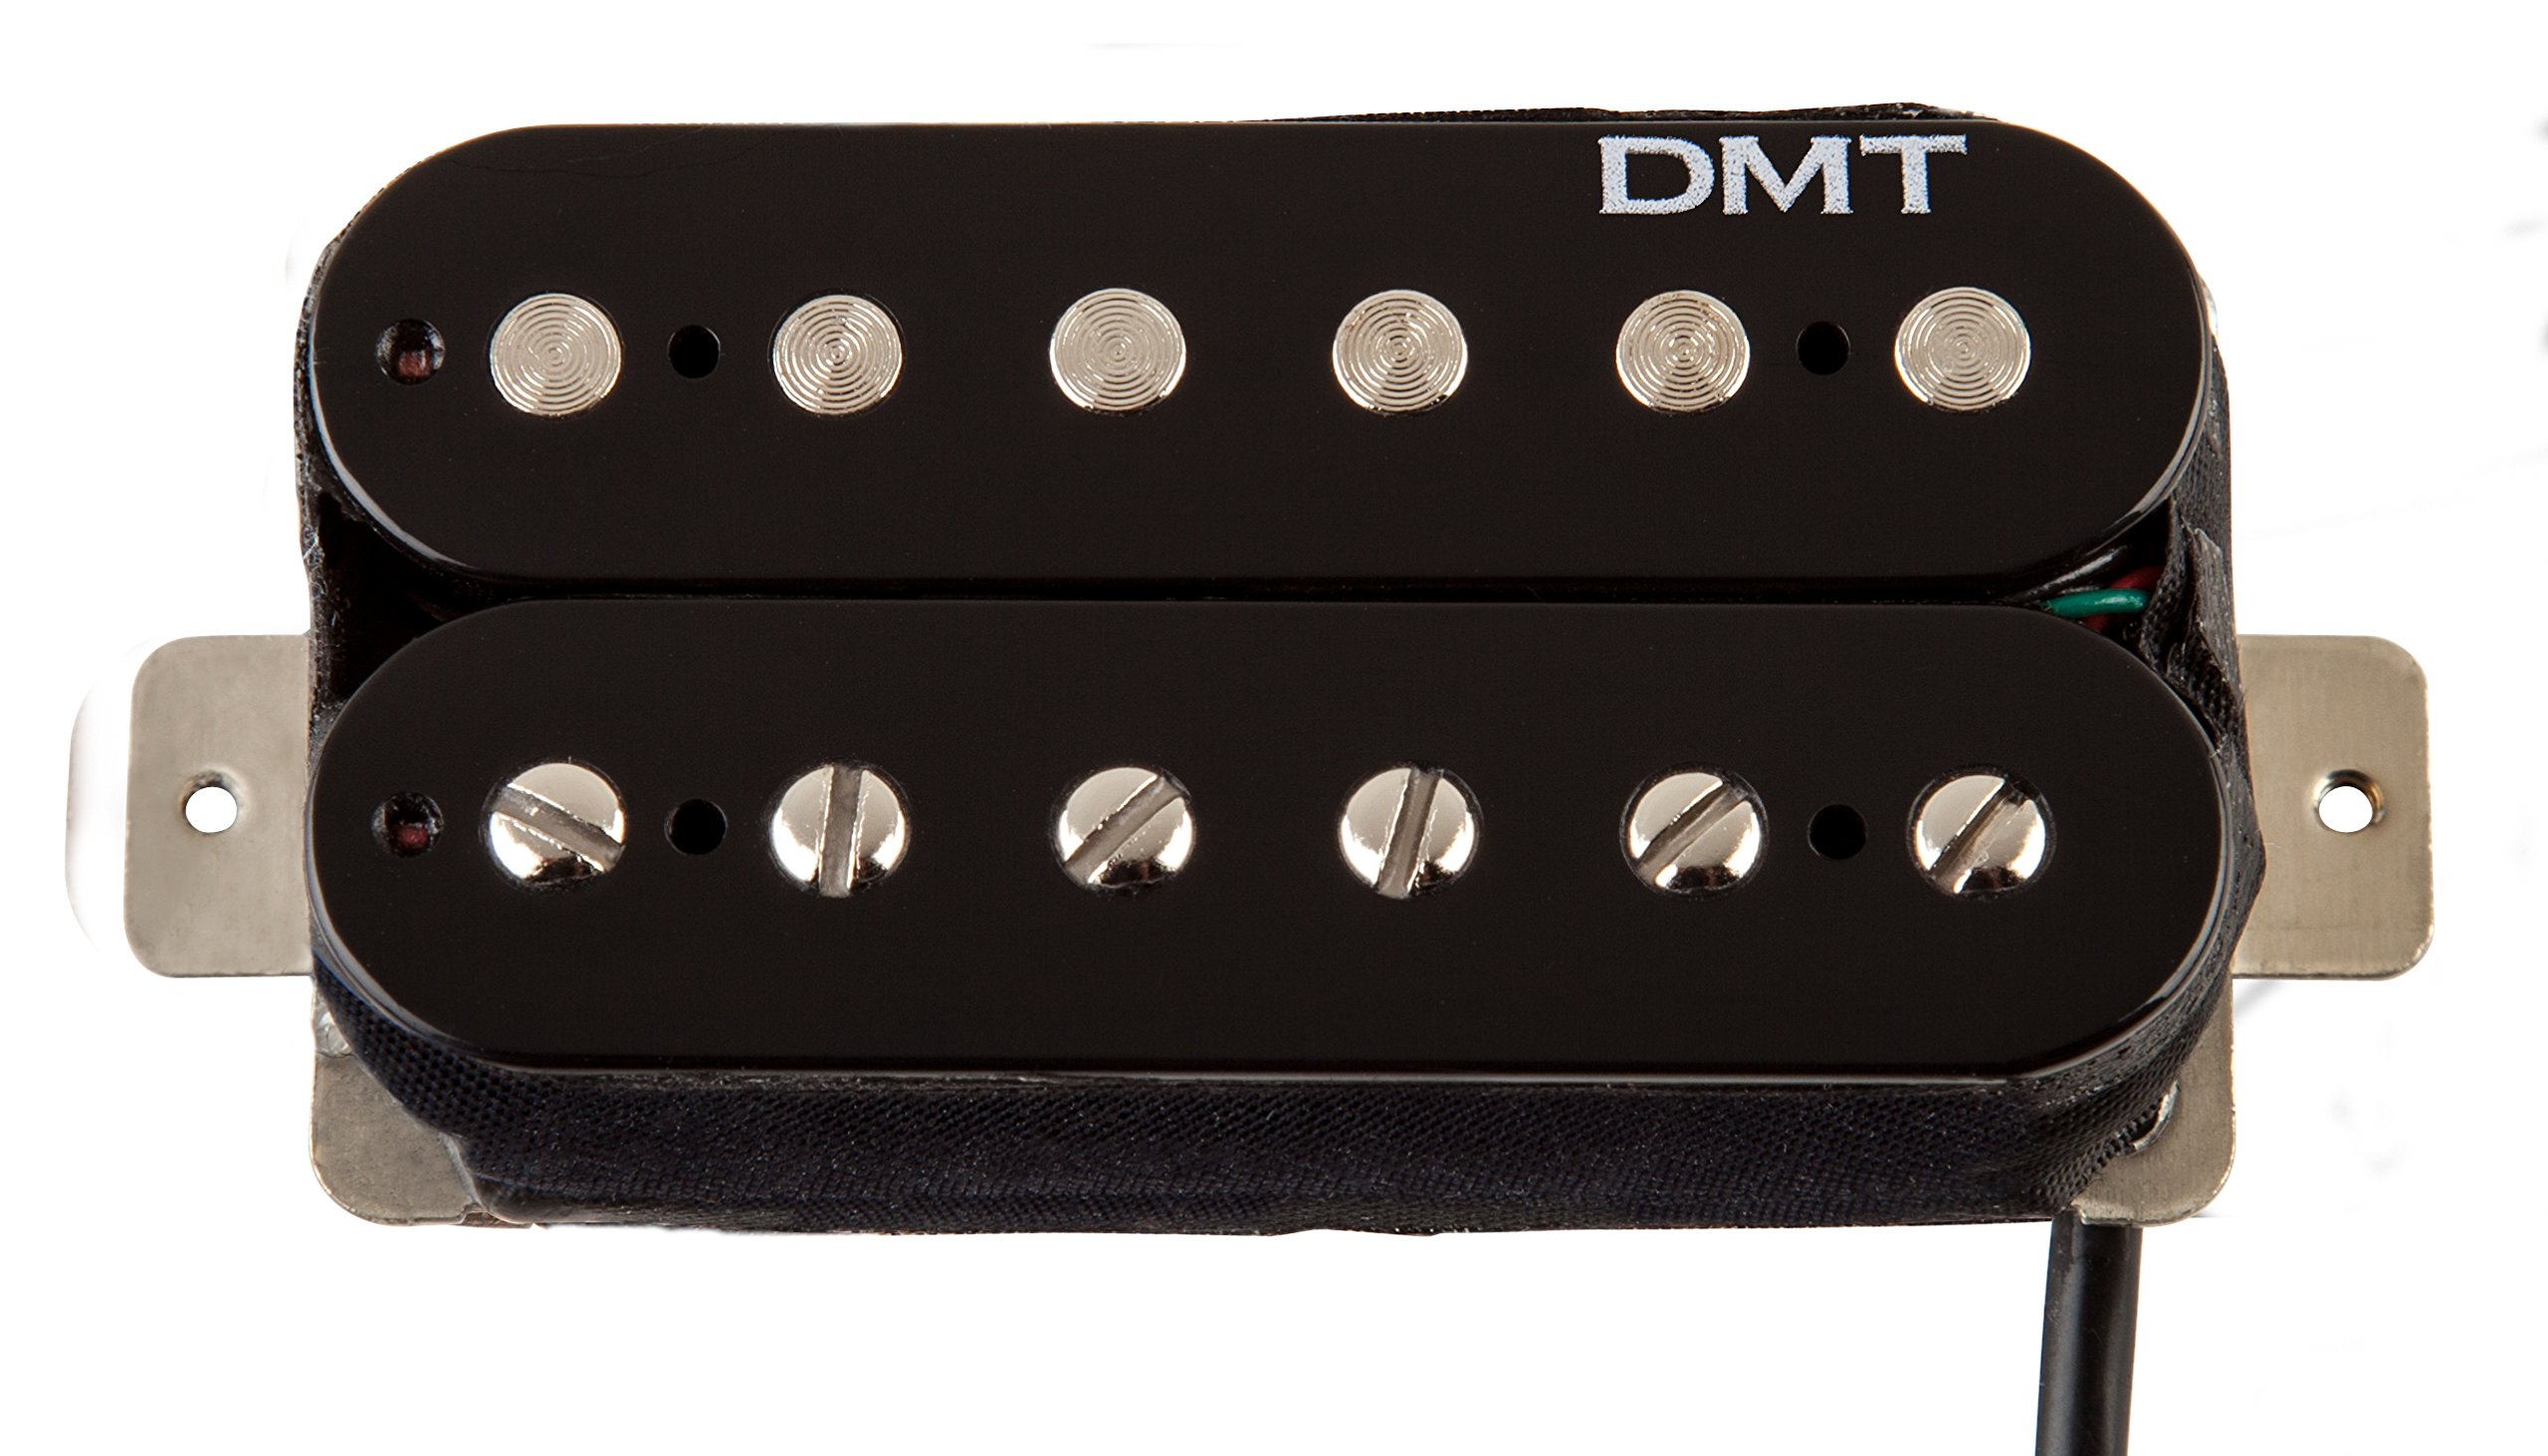 Dean DPU DD BB G DimeTime G-Spaced Electric Guitar